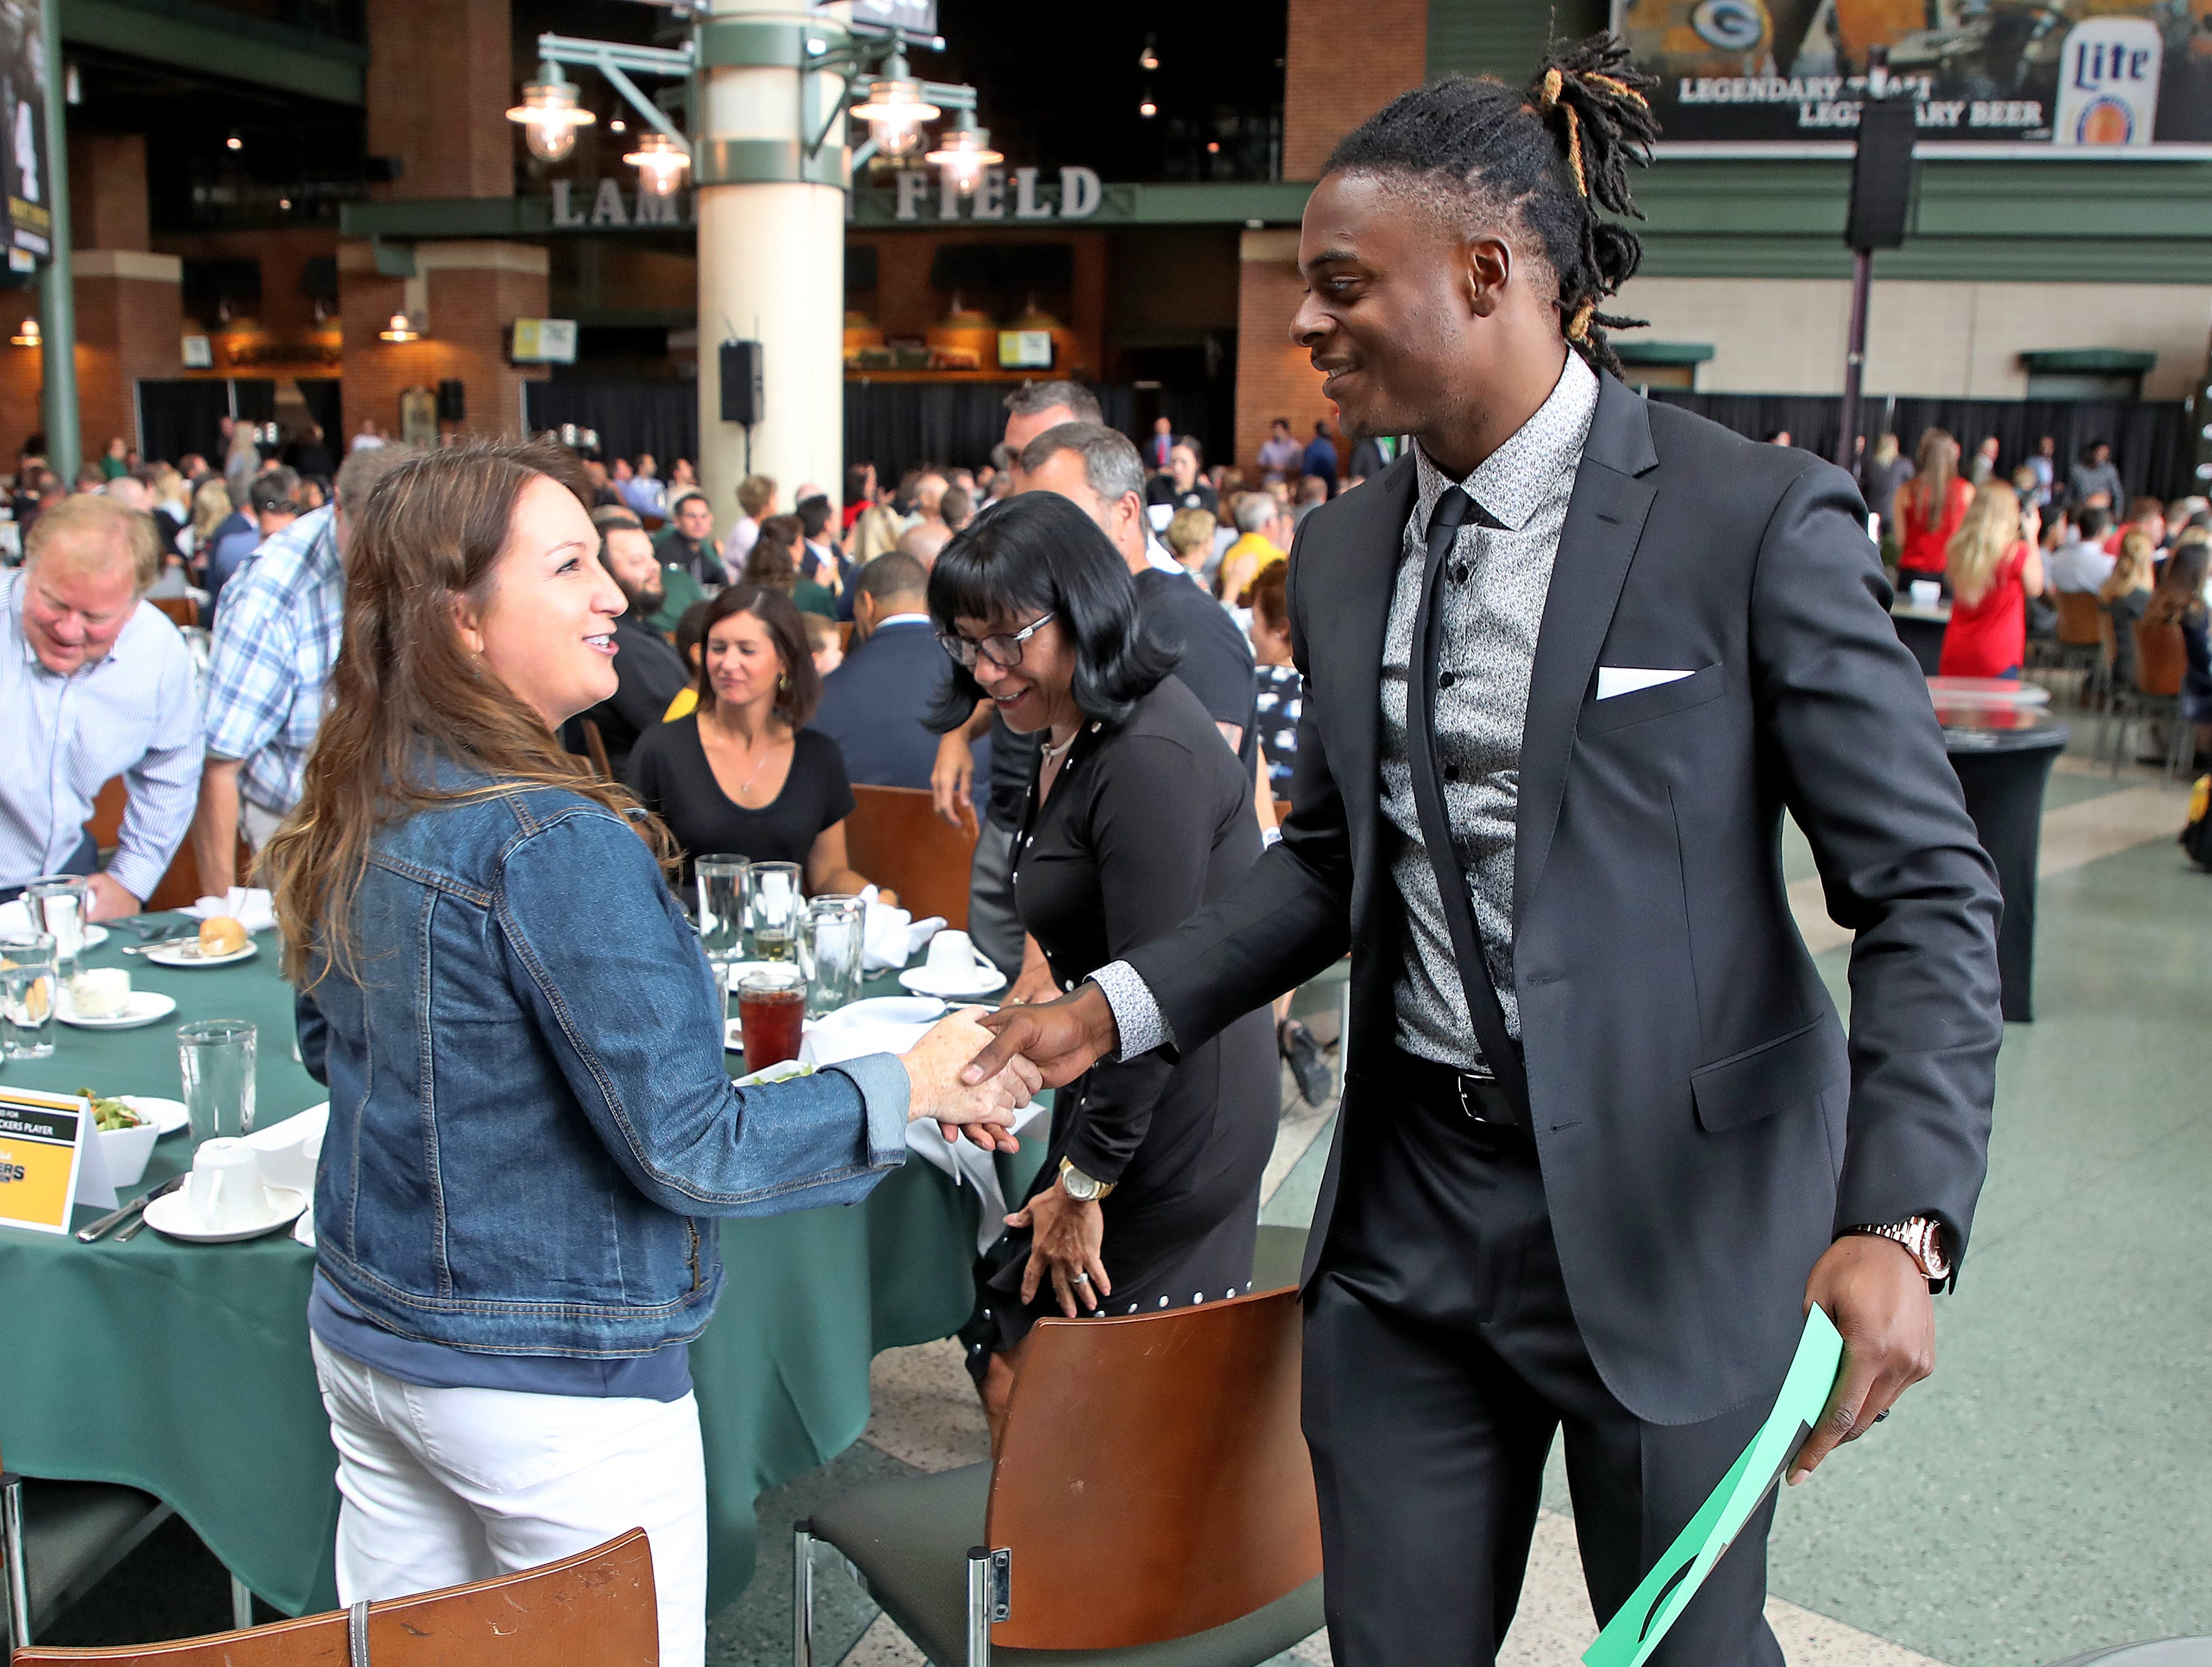 Green Bay Packers wide receiver Davante Adams (17) greets people at his table during the Green Bay Chamber of Commerce Welcome Back Packers Luncheon at Lambeau Field Wednesday, August 29, 2018 in Green Bay, Wis.